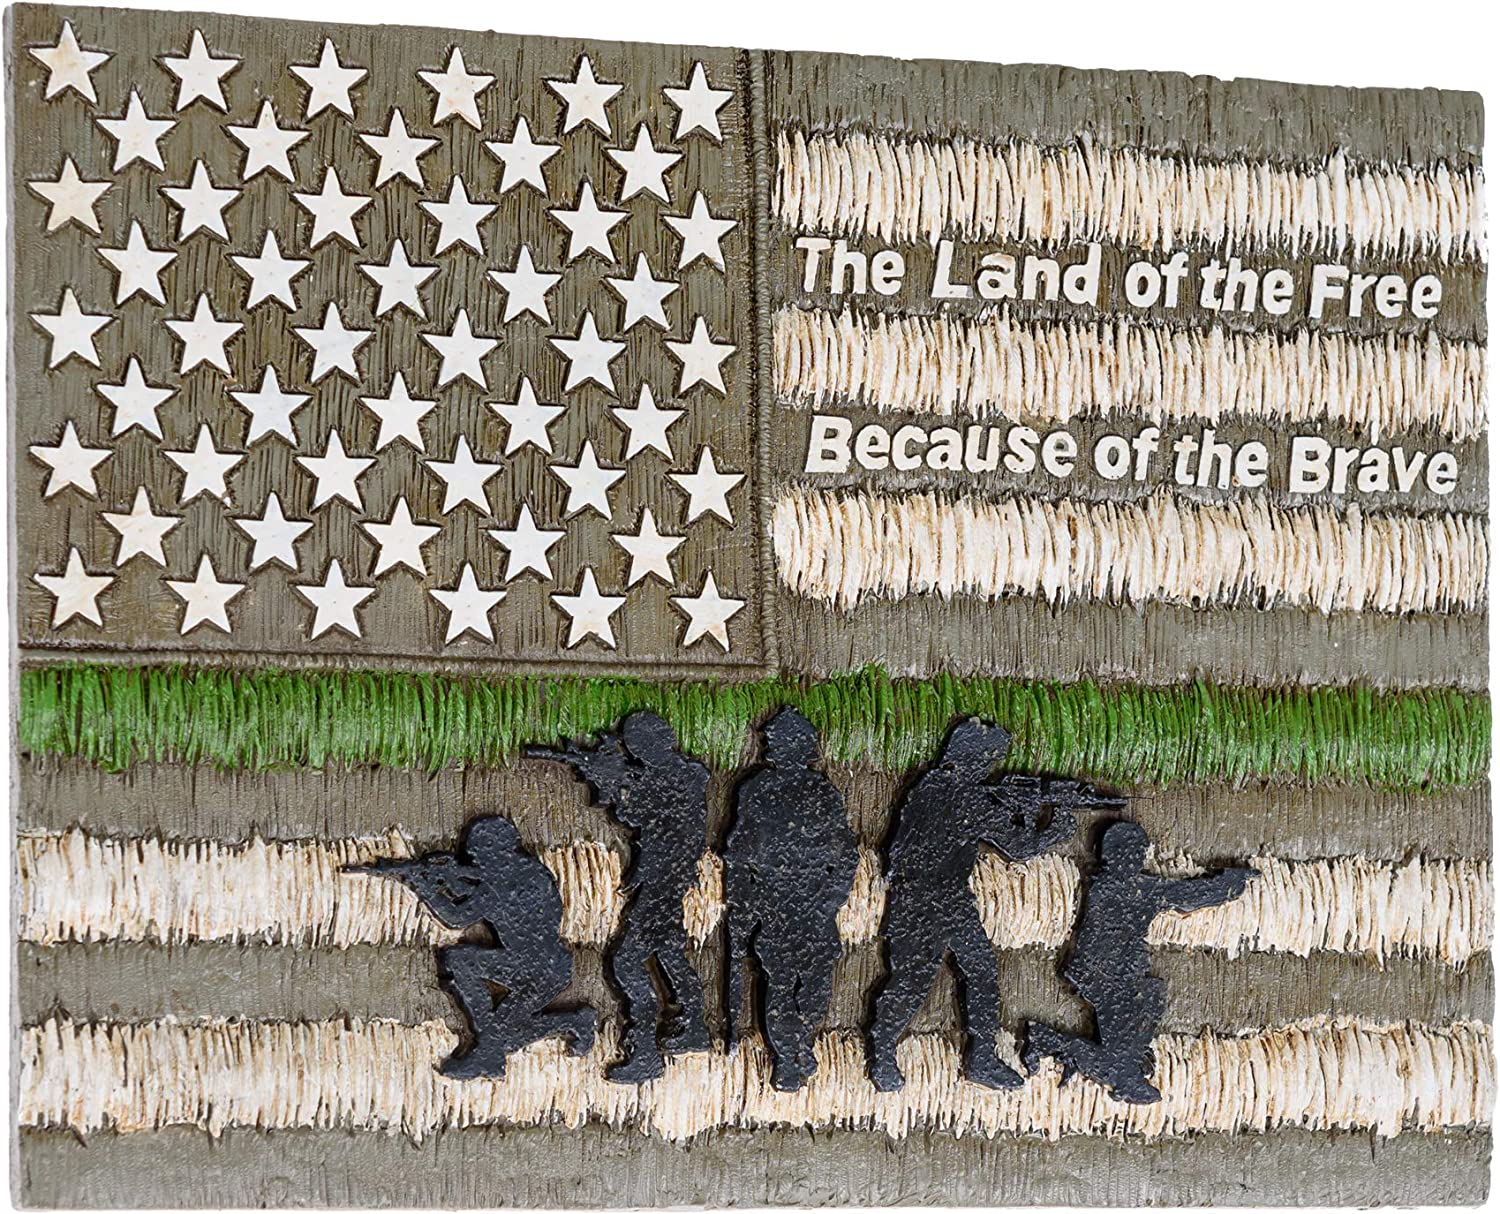 The Land of the Free Because of the Brave America Wall Decor - American Flag Decorations for Home Wall Decorations Military Office Decor Patriotic Decoration for Men - American Wall Art Plaques Decor